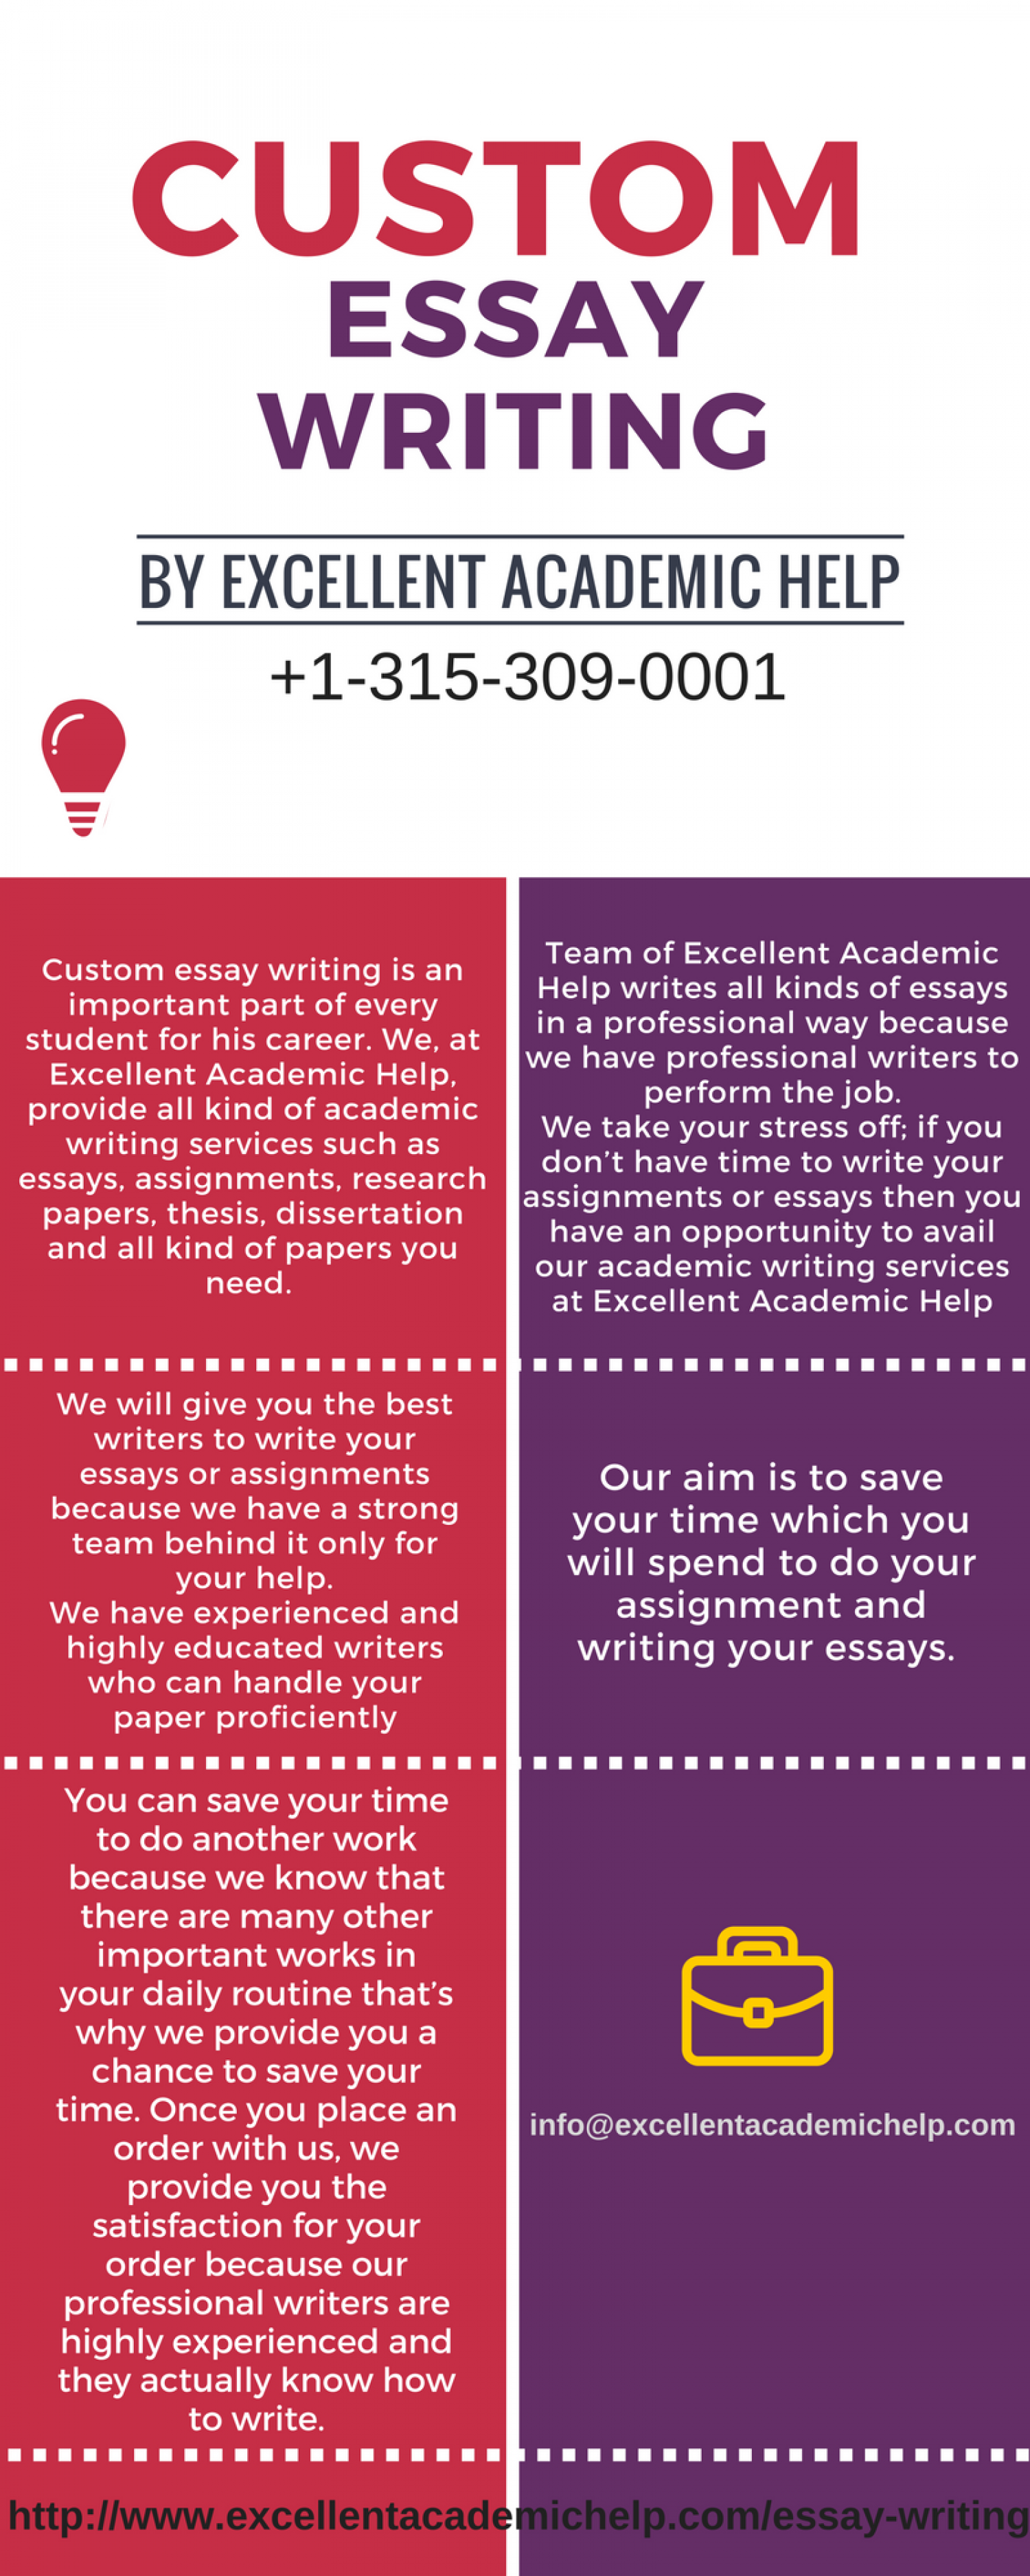 custom academic writing services com utilisons des cookies afin de fournir une custom academic writing services exprience utilisateur conviviale en naviguant sur ce site m is a website